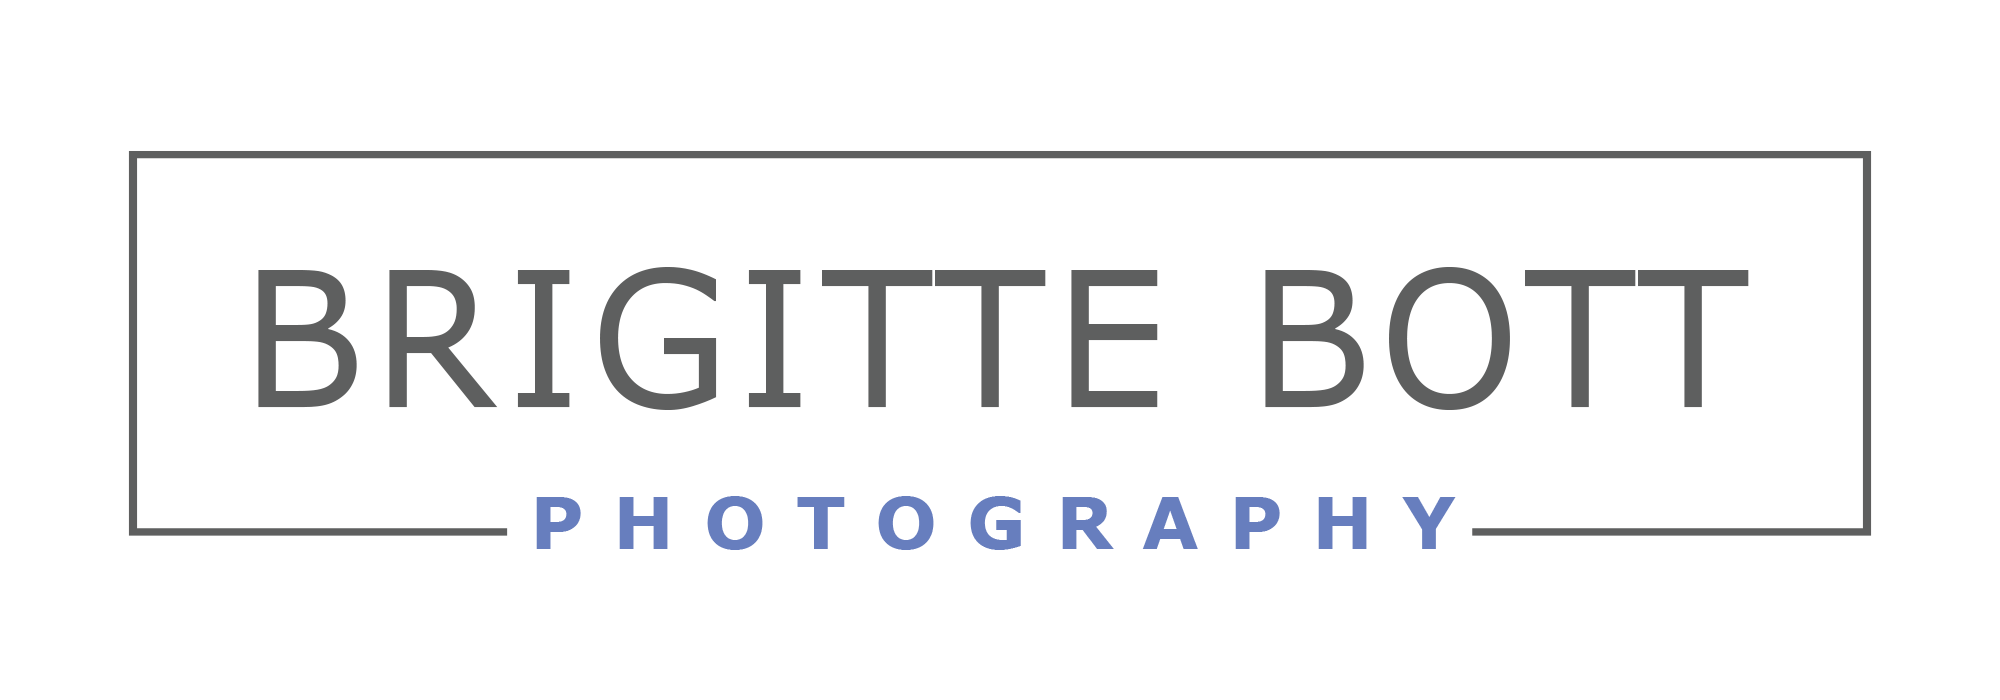 BRIGITTE BOTT PHOTOGRAPHY